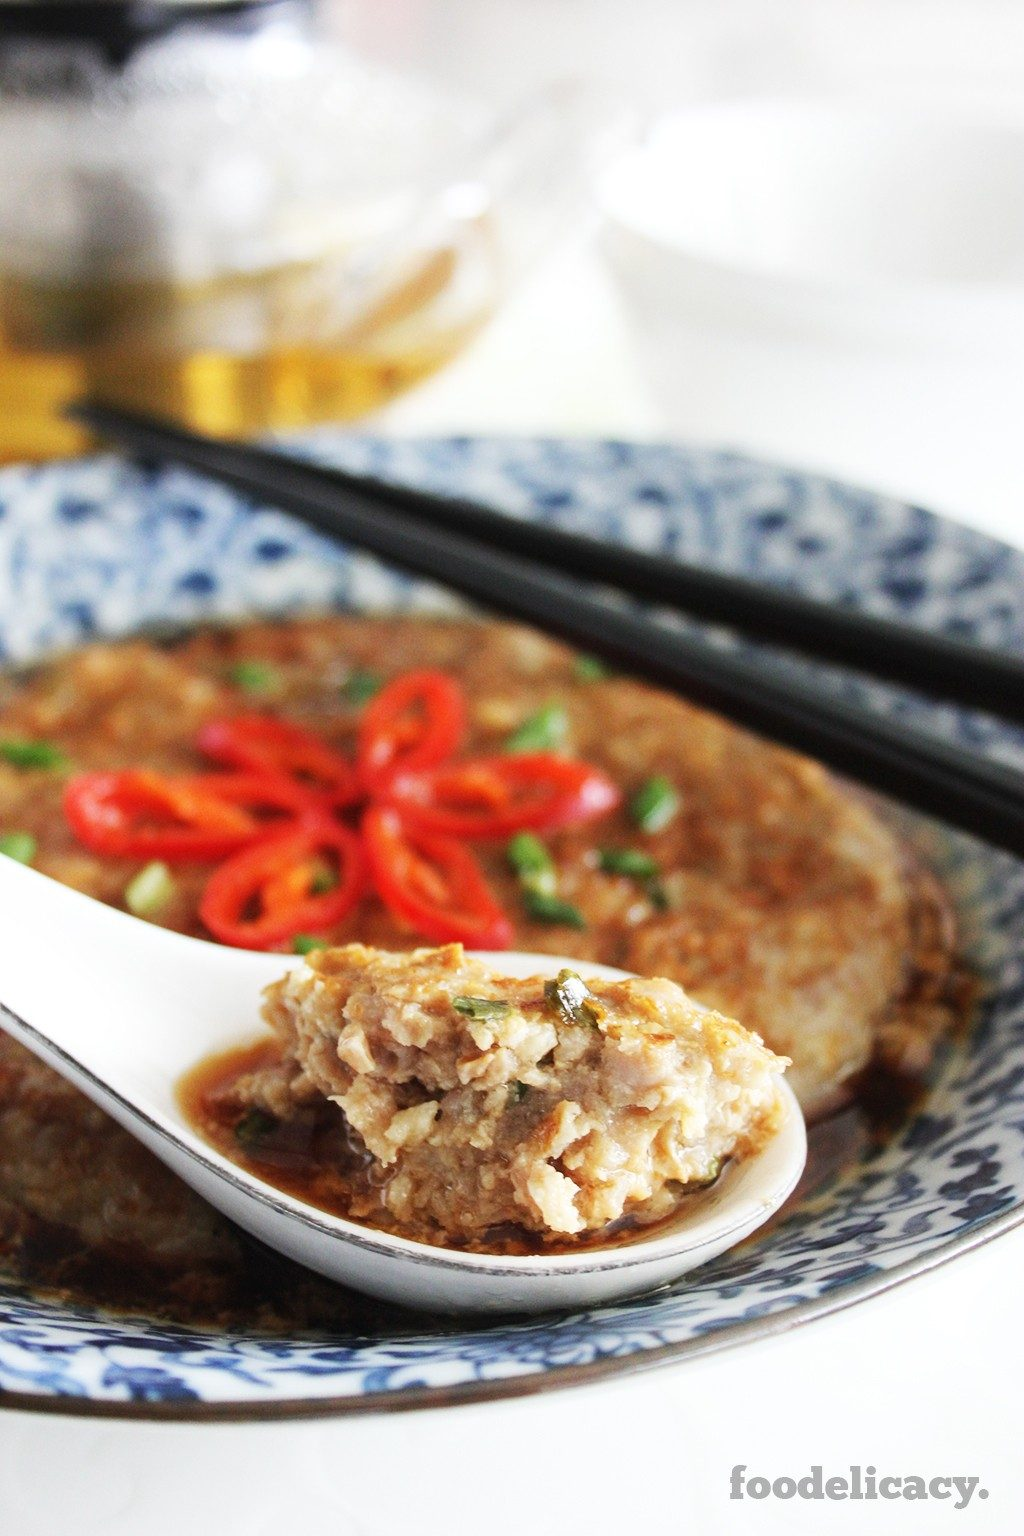 Steamed_Minced_Pork_with_Water_Chestnut_1D